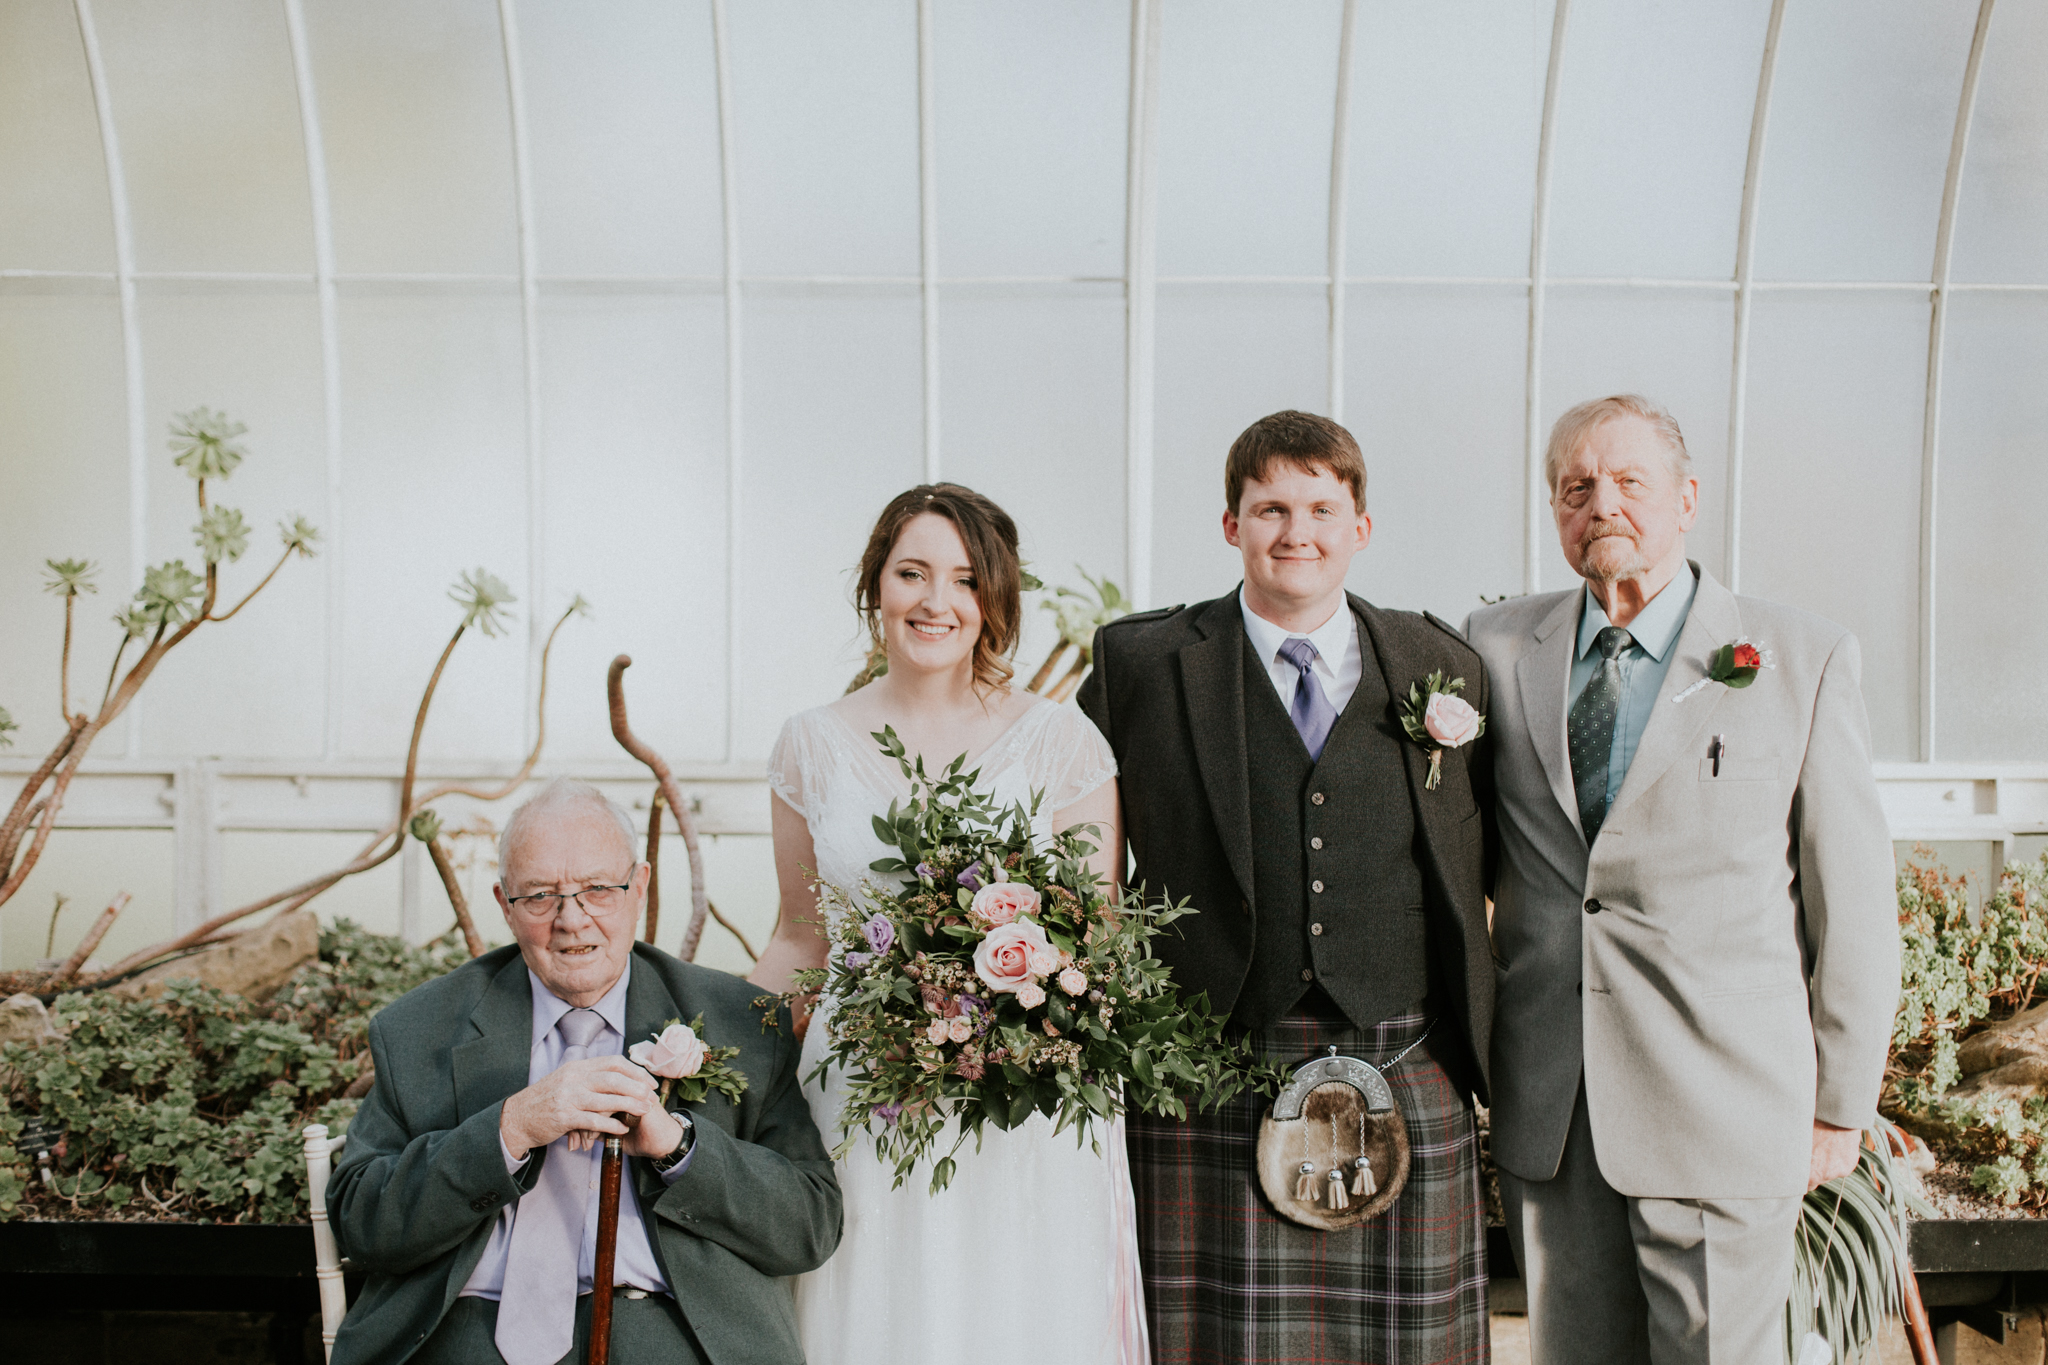 A family portrait of the bride and groom with their grand fathers